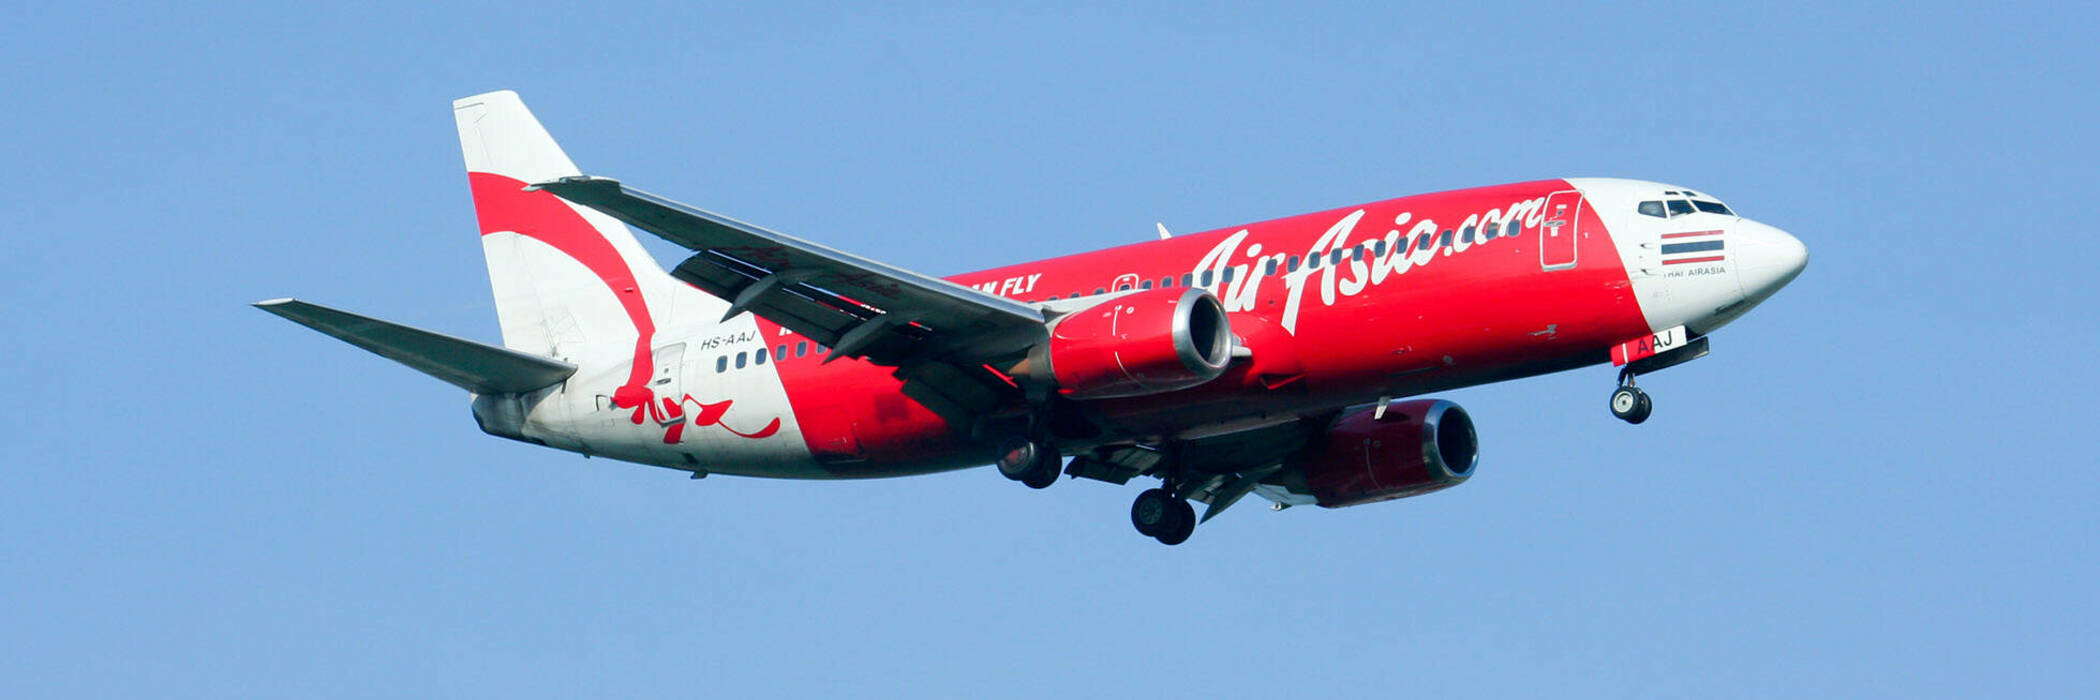 16sep airline warned for pricing practices hero